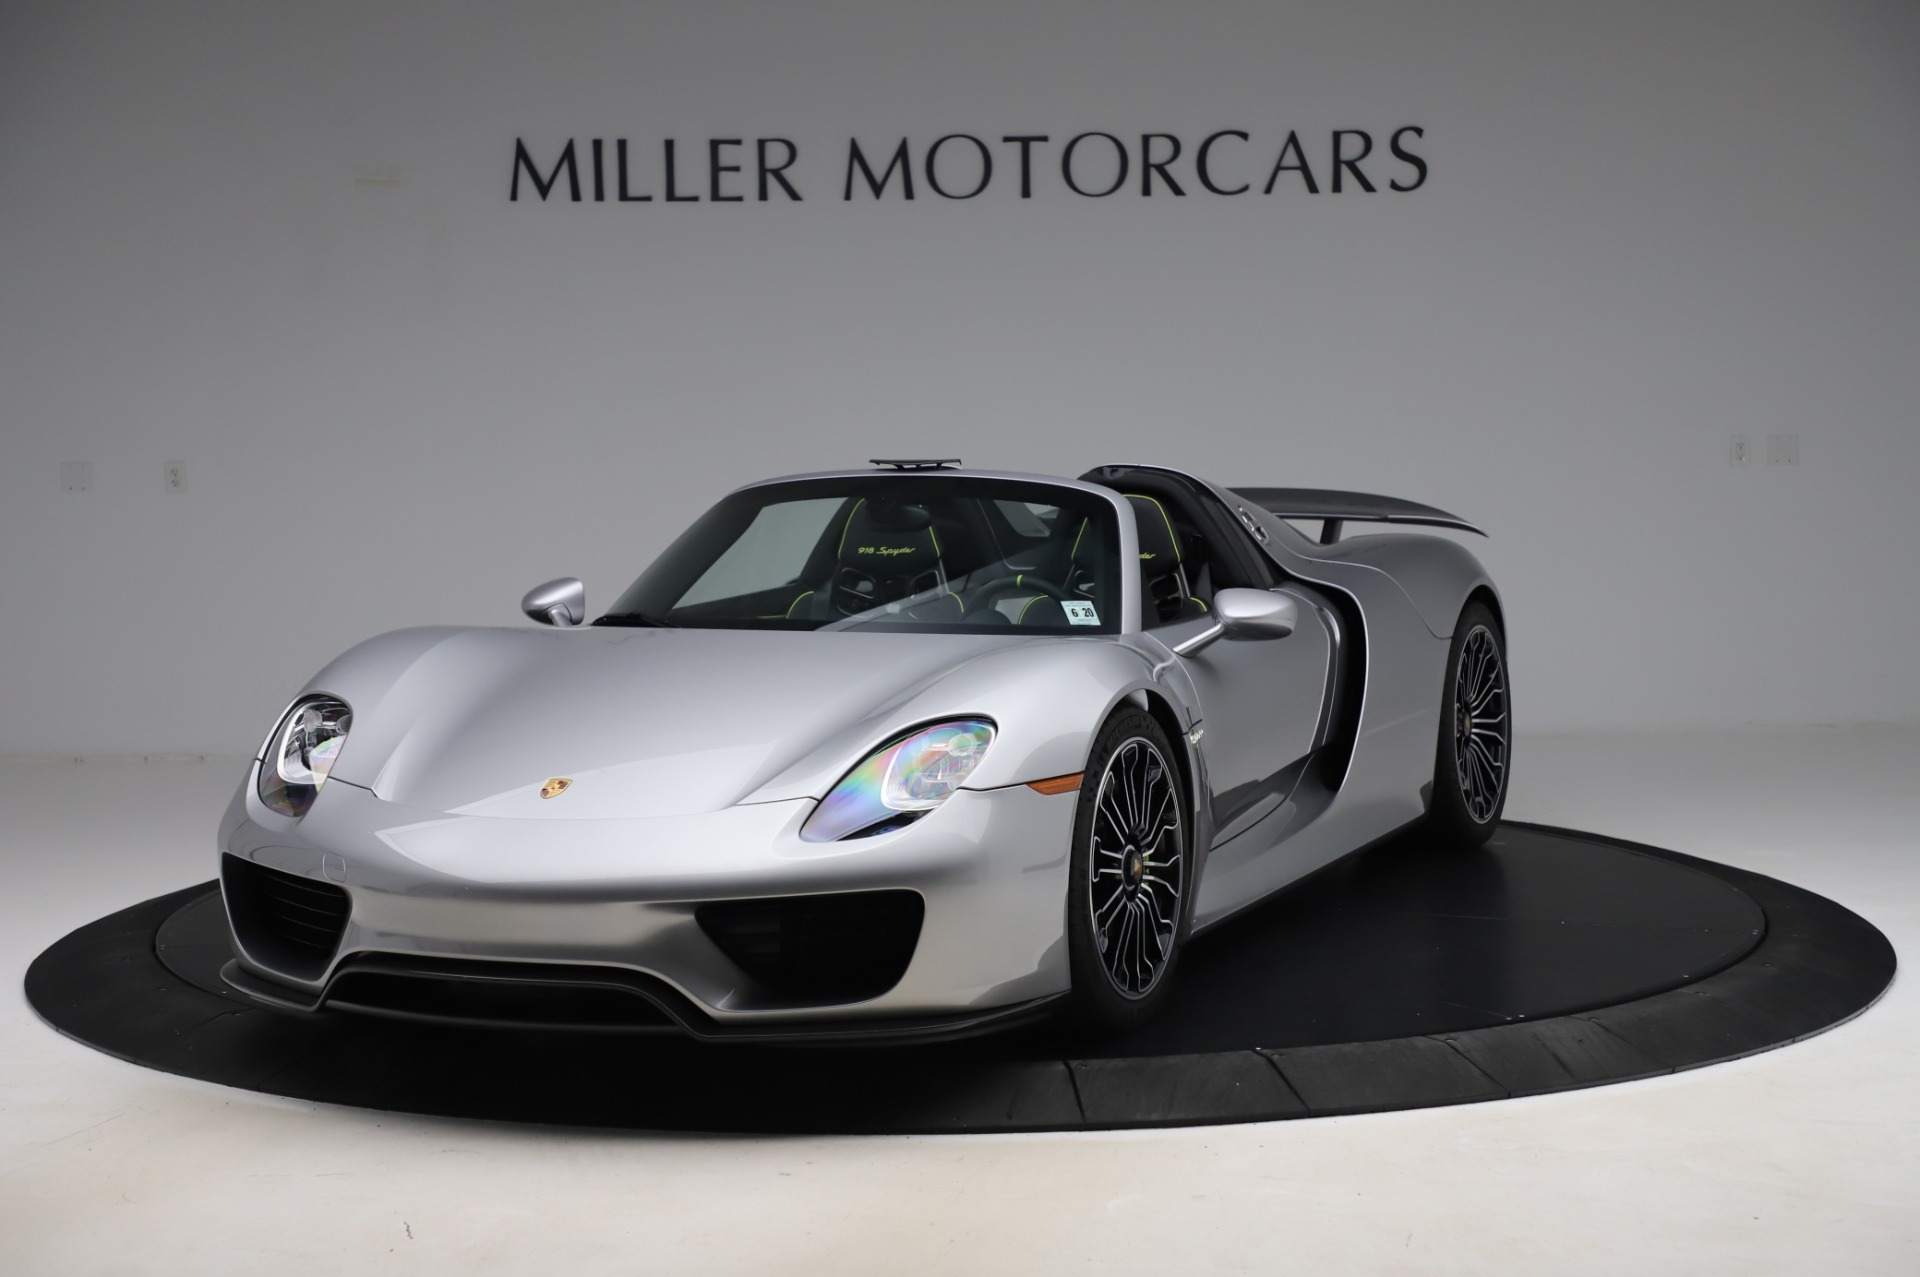 Used 2015 Porsche 918 Spyder for sale $1,389,900 at Maserati of Greenwich in Greenwich CT 06830 1